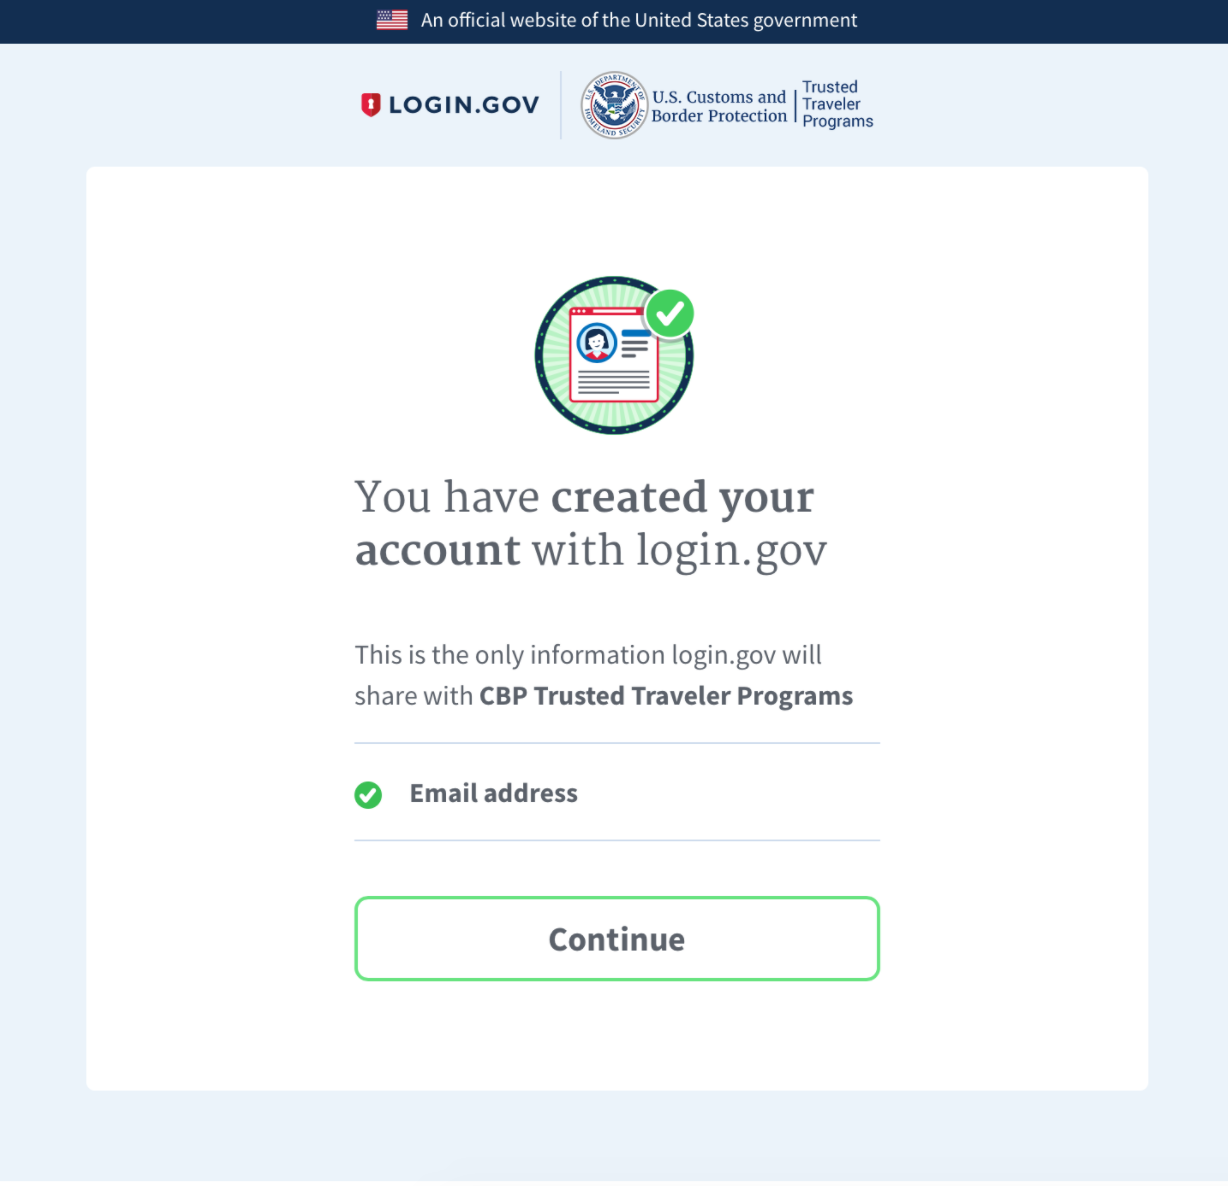 Login.gov created account page